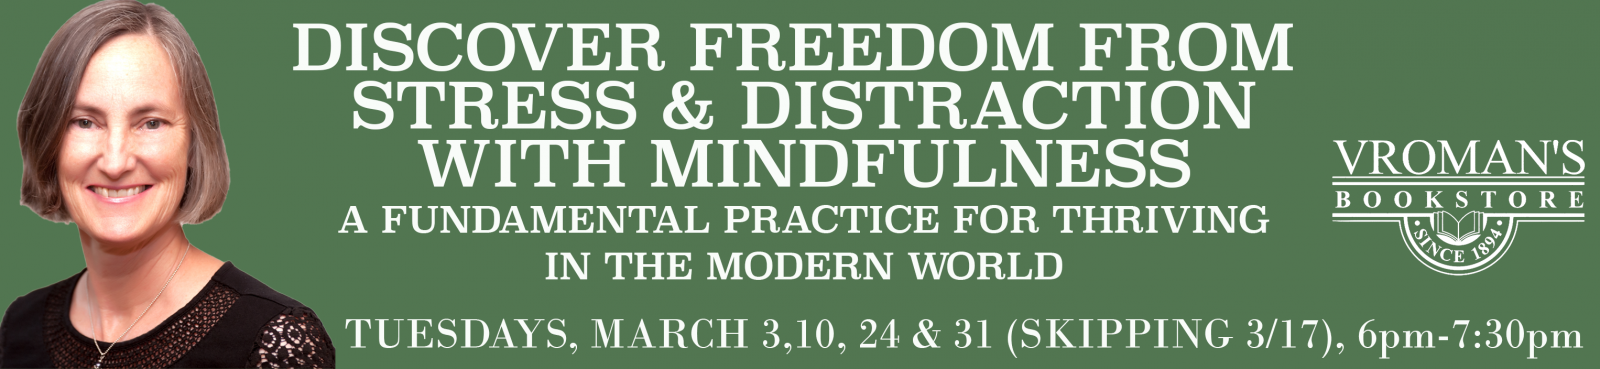 Discover Freedom from Stress and Distraction with Mindfulness Workshop